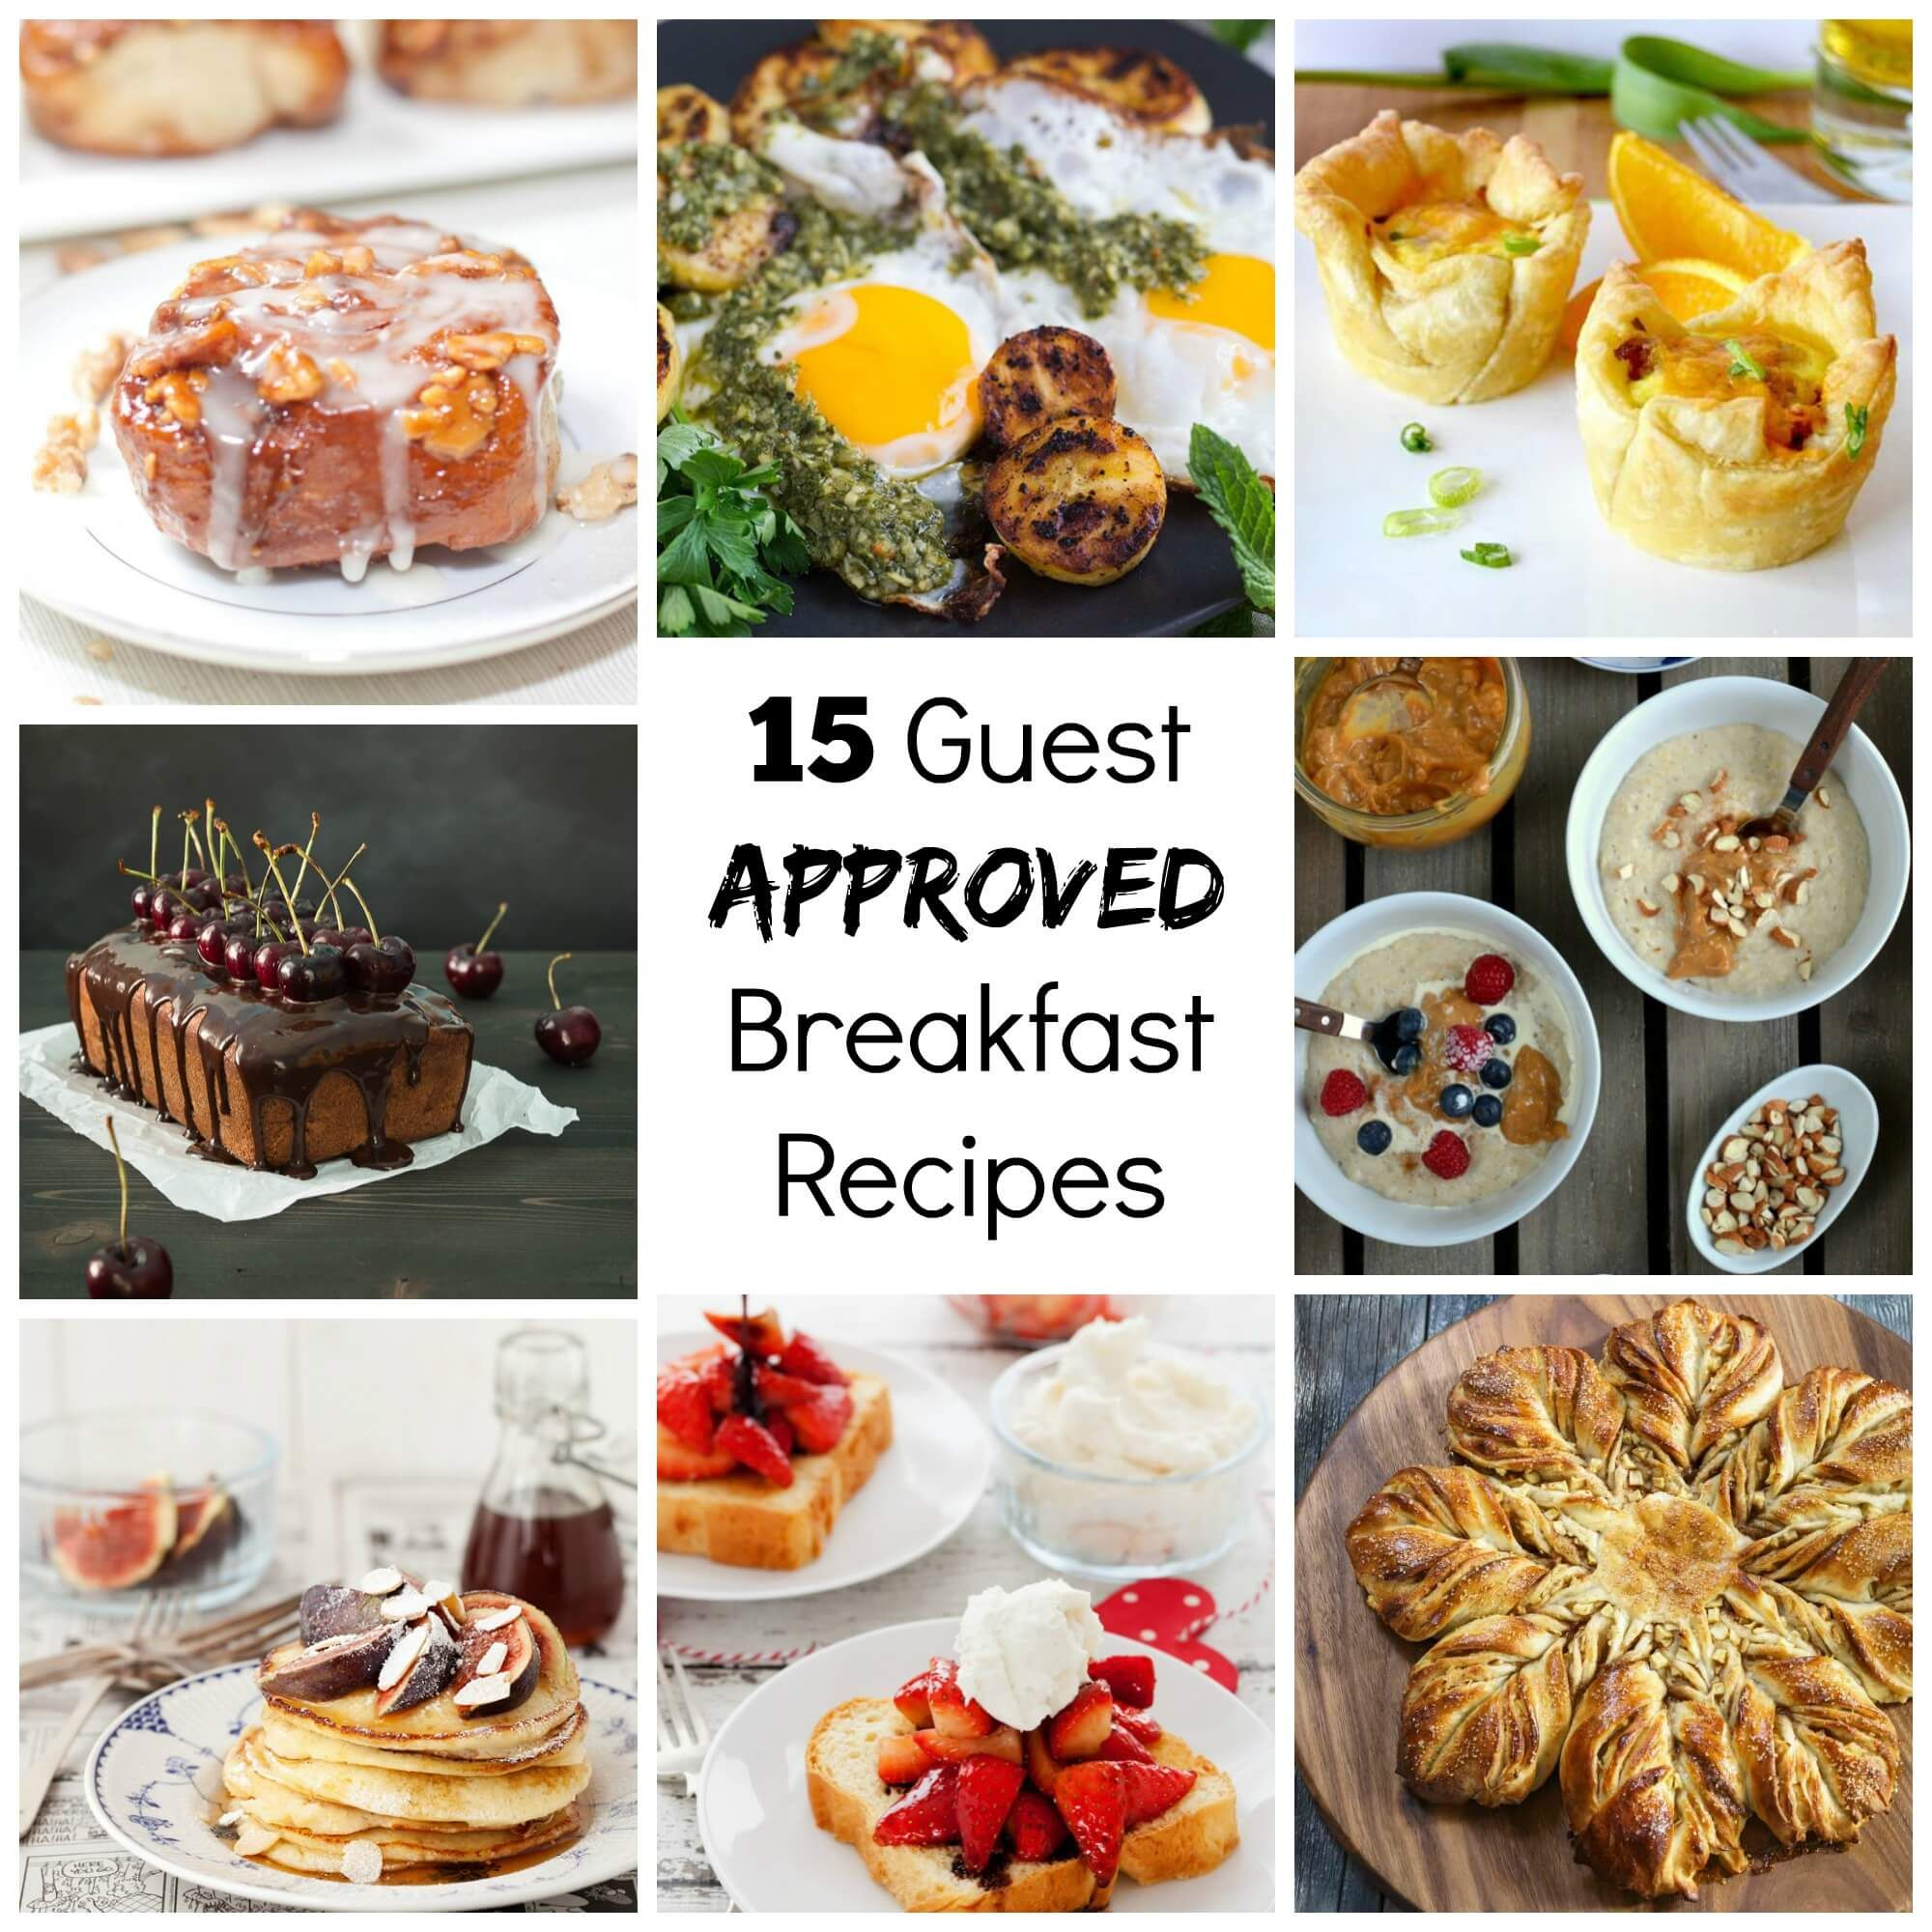 15 Guest Approved Breakfast Recipes that will take the stress off of hosting overnight guests. They are tried, true and guaranteed delicious!